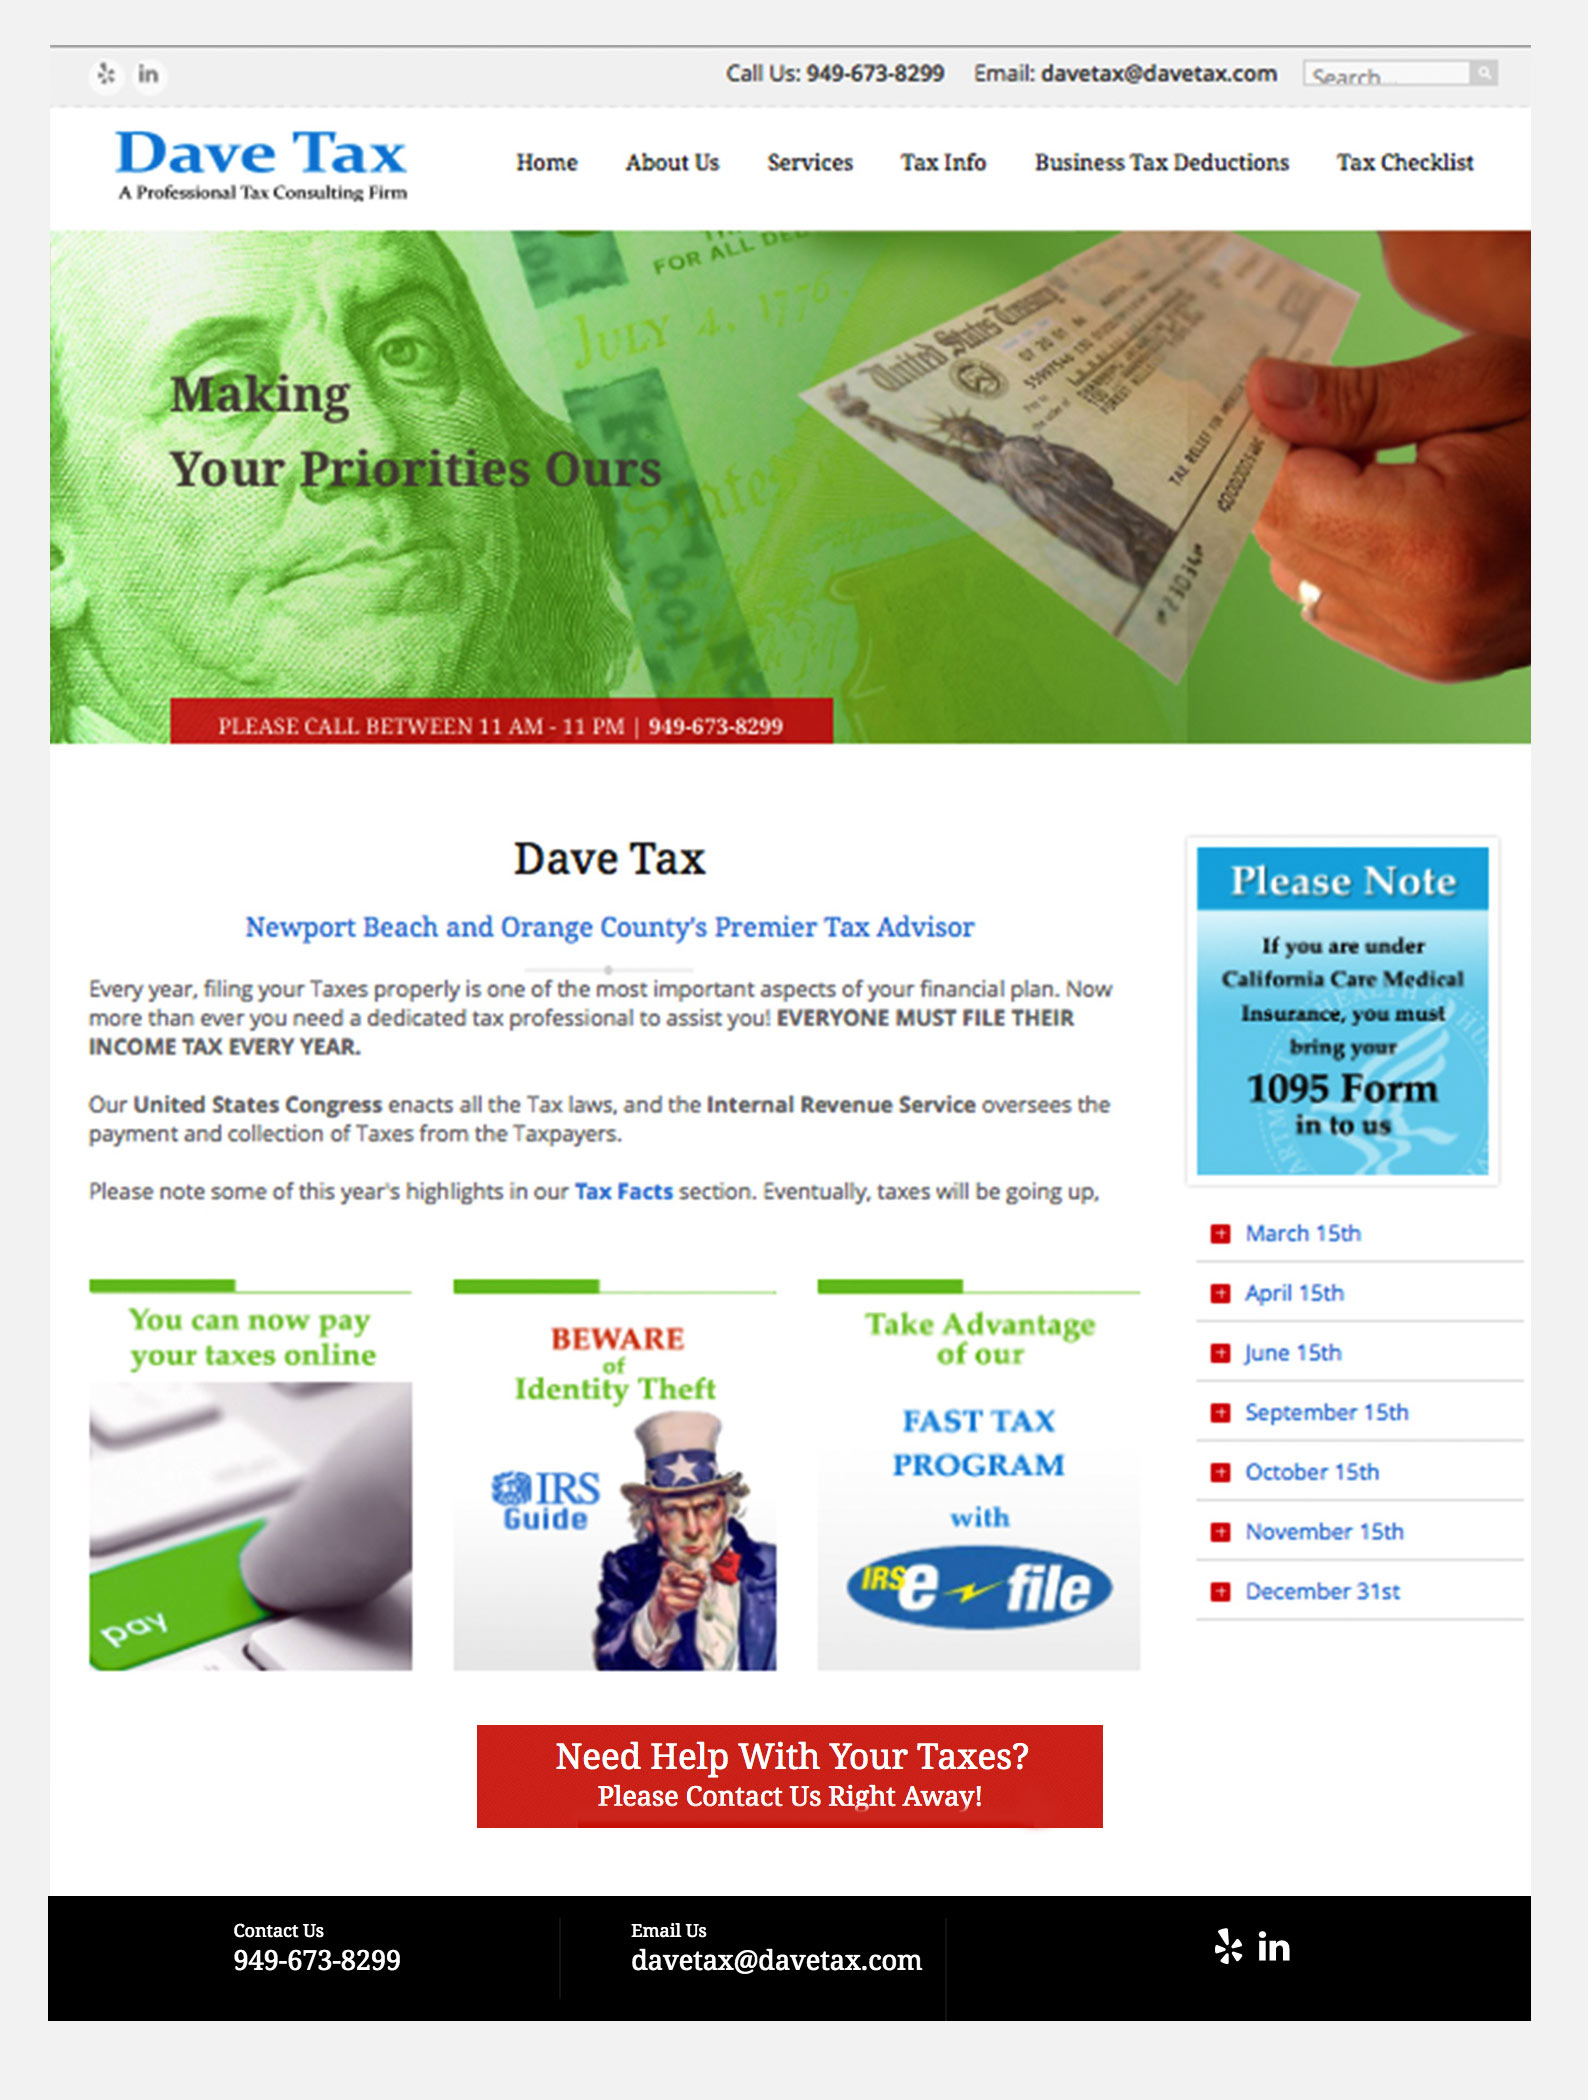 Dave Tax - Tax Services